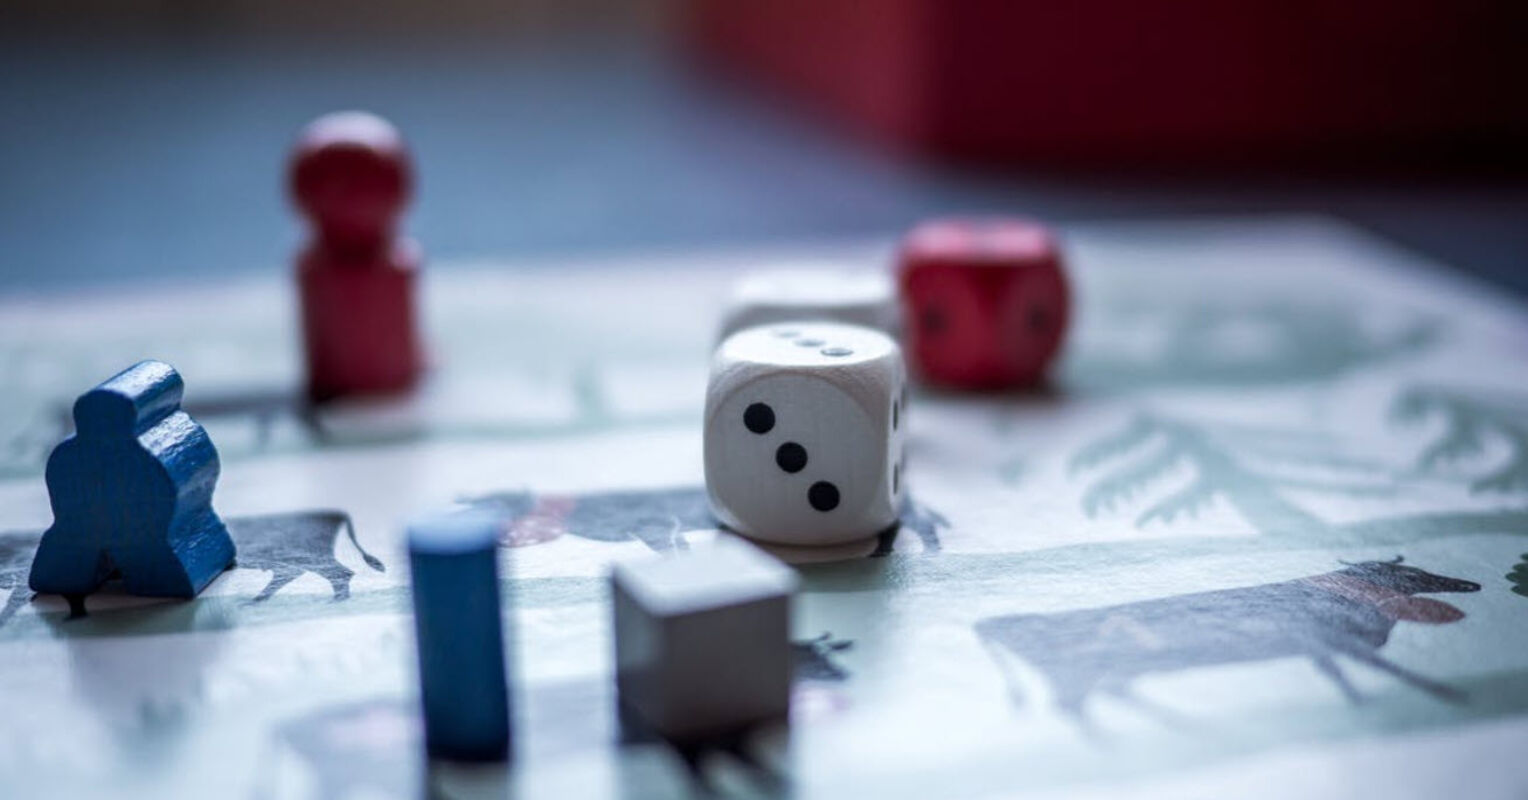 psychologytoday.com - Cami Rosso - AI Breakthrough Solves Vexing Game-Theory Problem